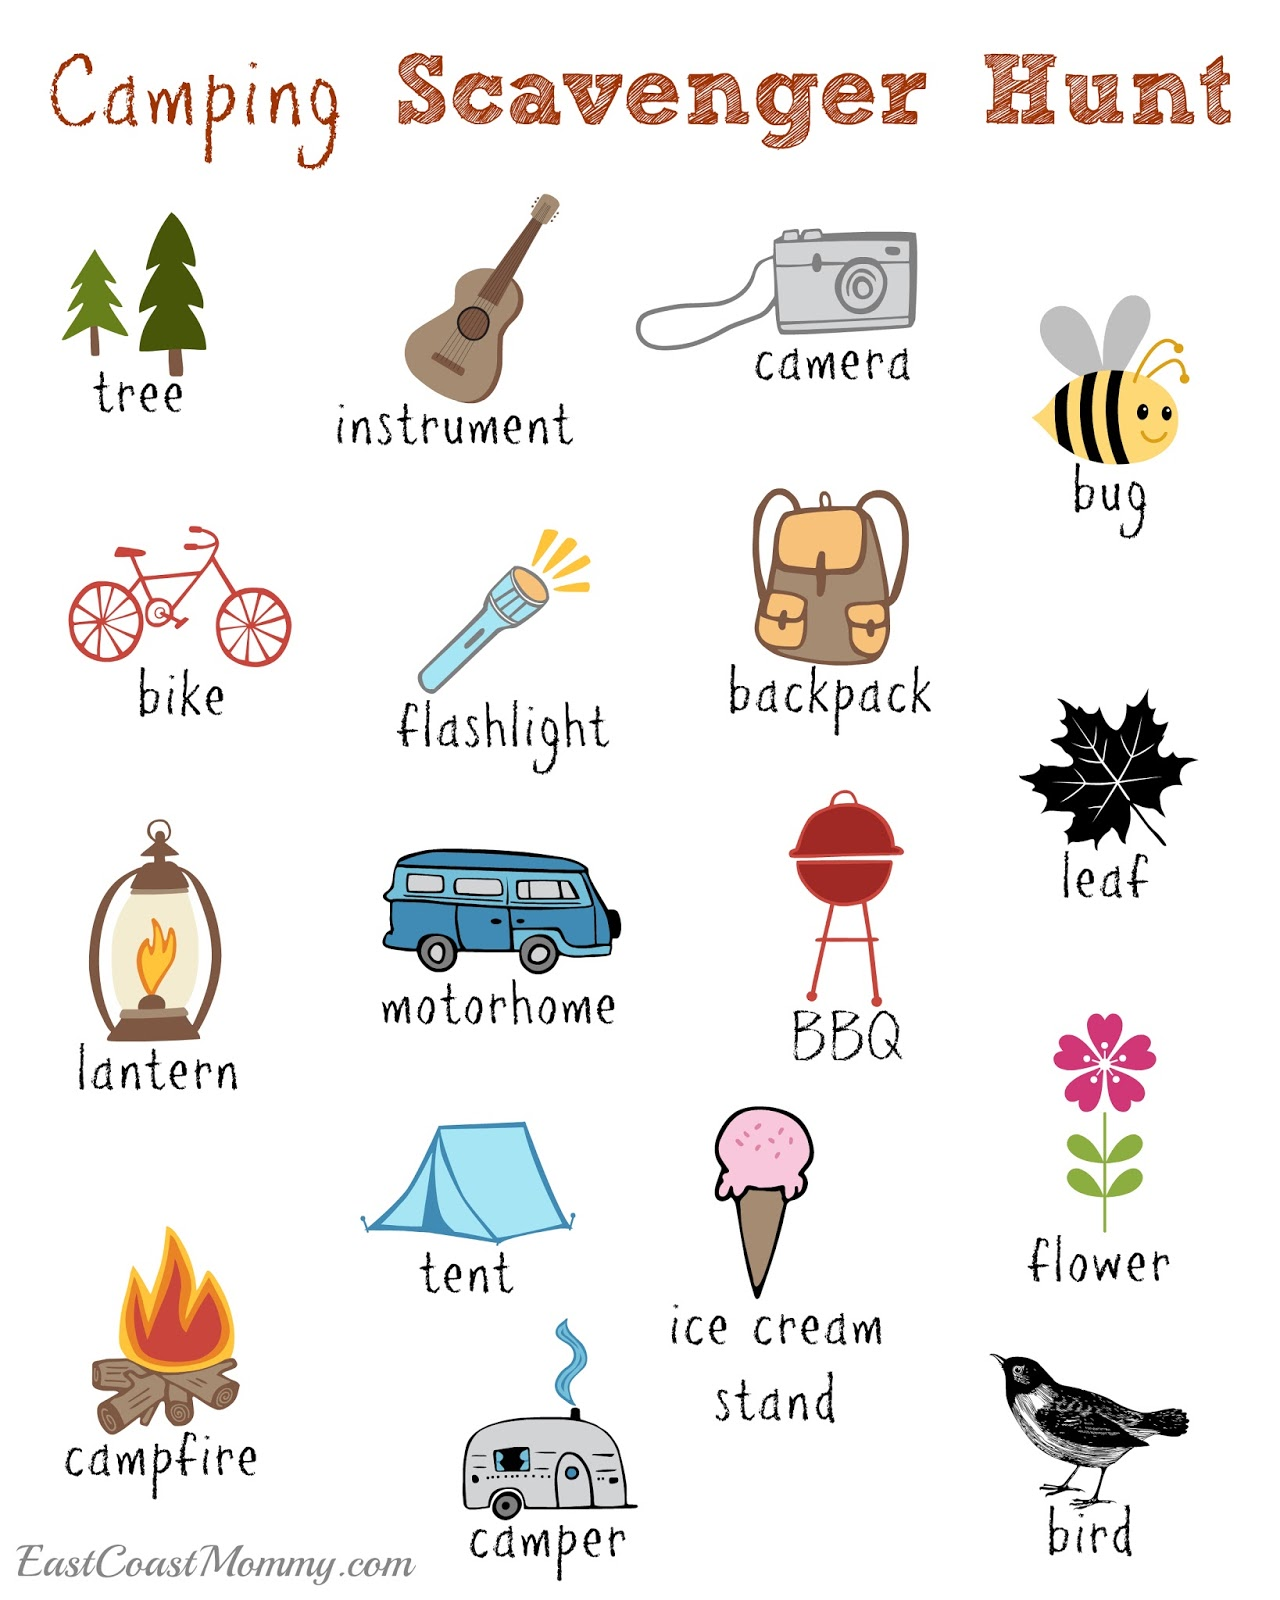 East Coast Mommy Camping Scavenger Hunt Free Printable